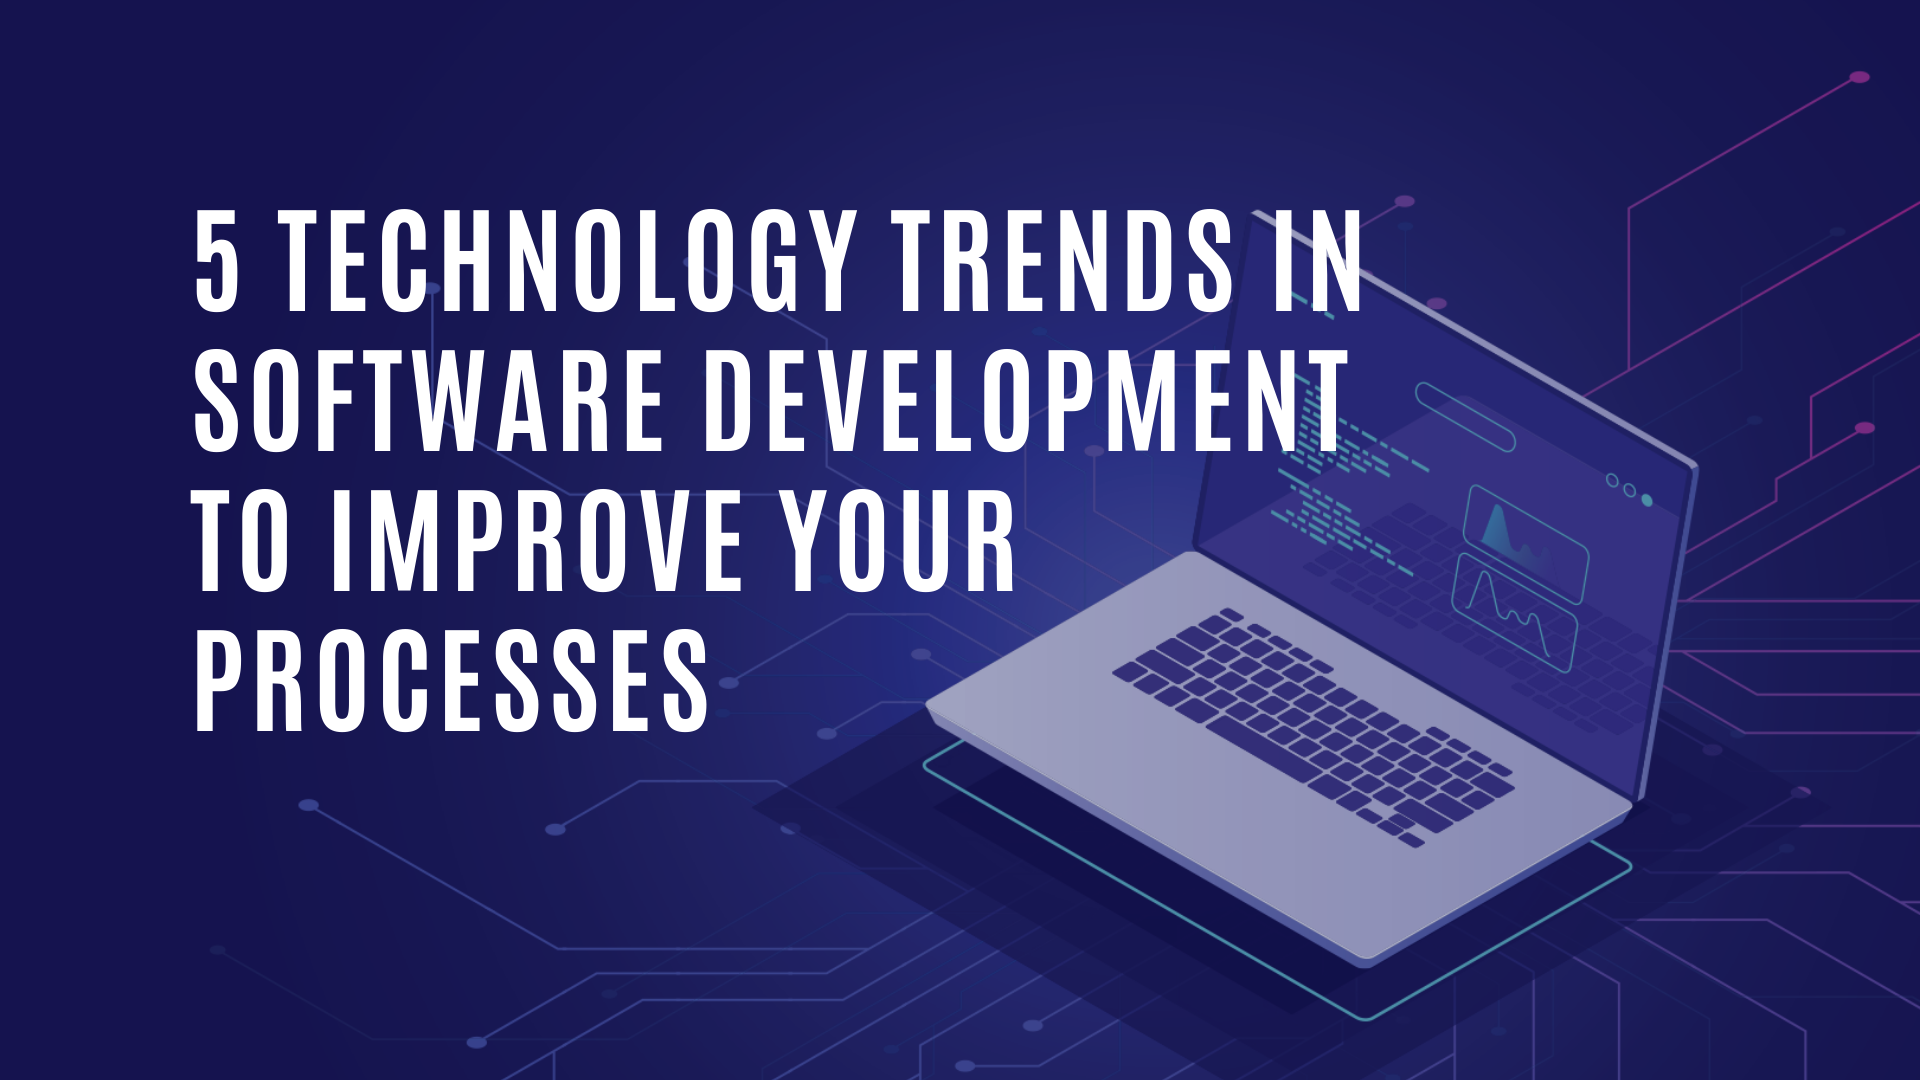 5 Technology Trends in Software Development to Improve Your Processes